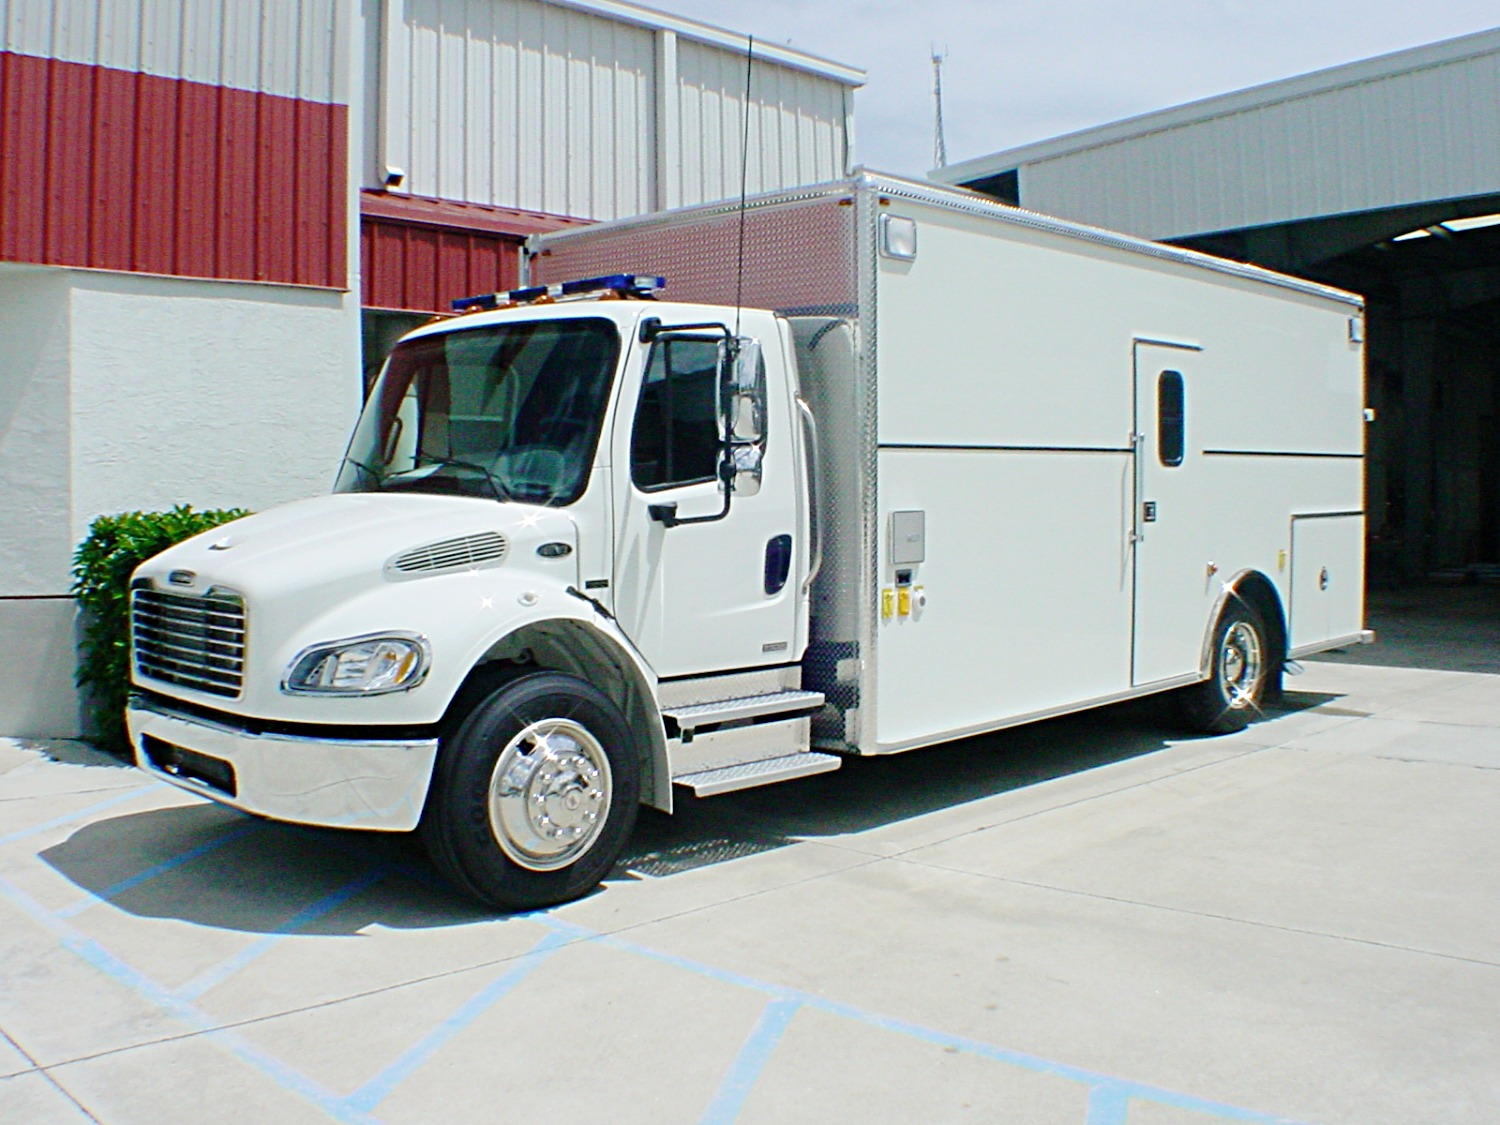 evi tactical command unit